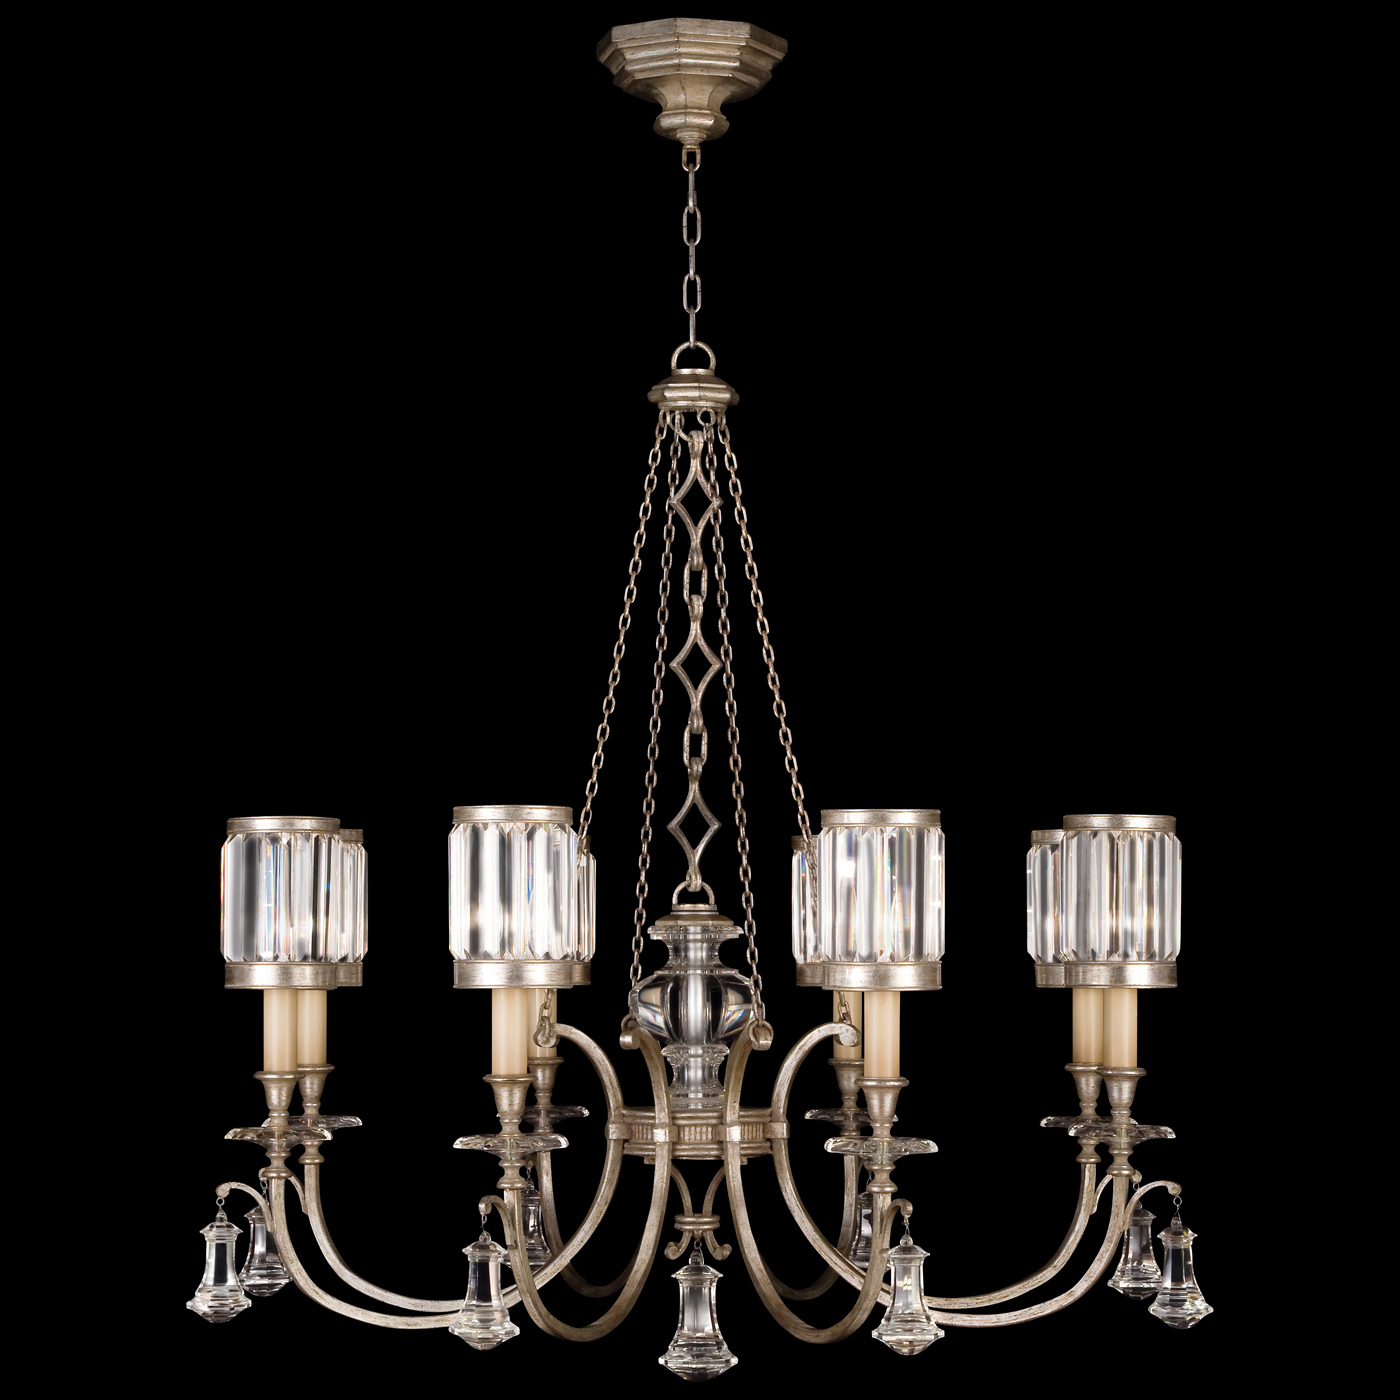 EATON PLACE - FINE ART HANDCRAFTED LIGHTING